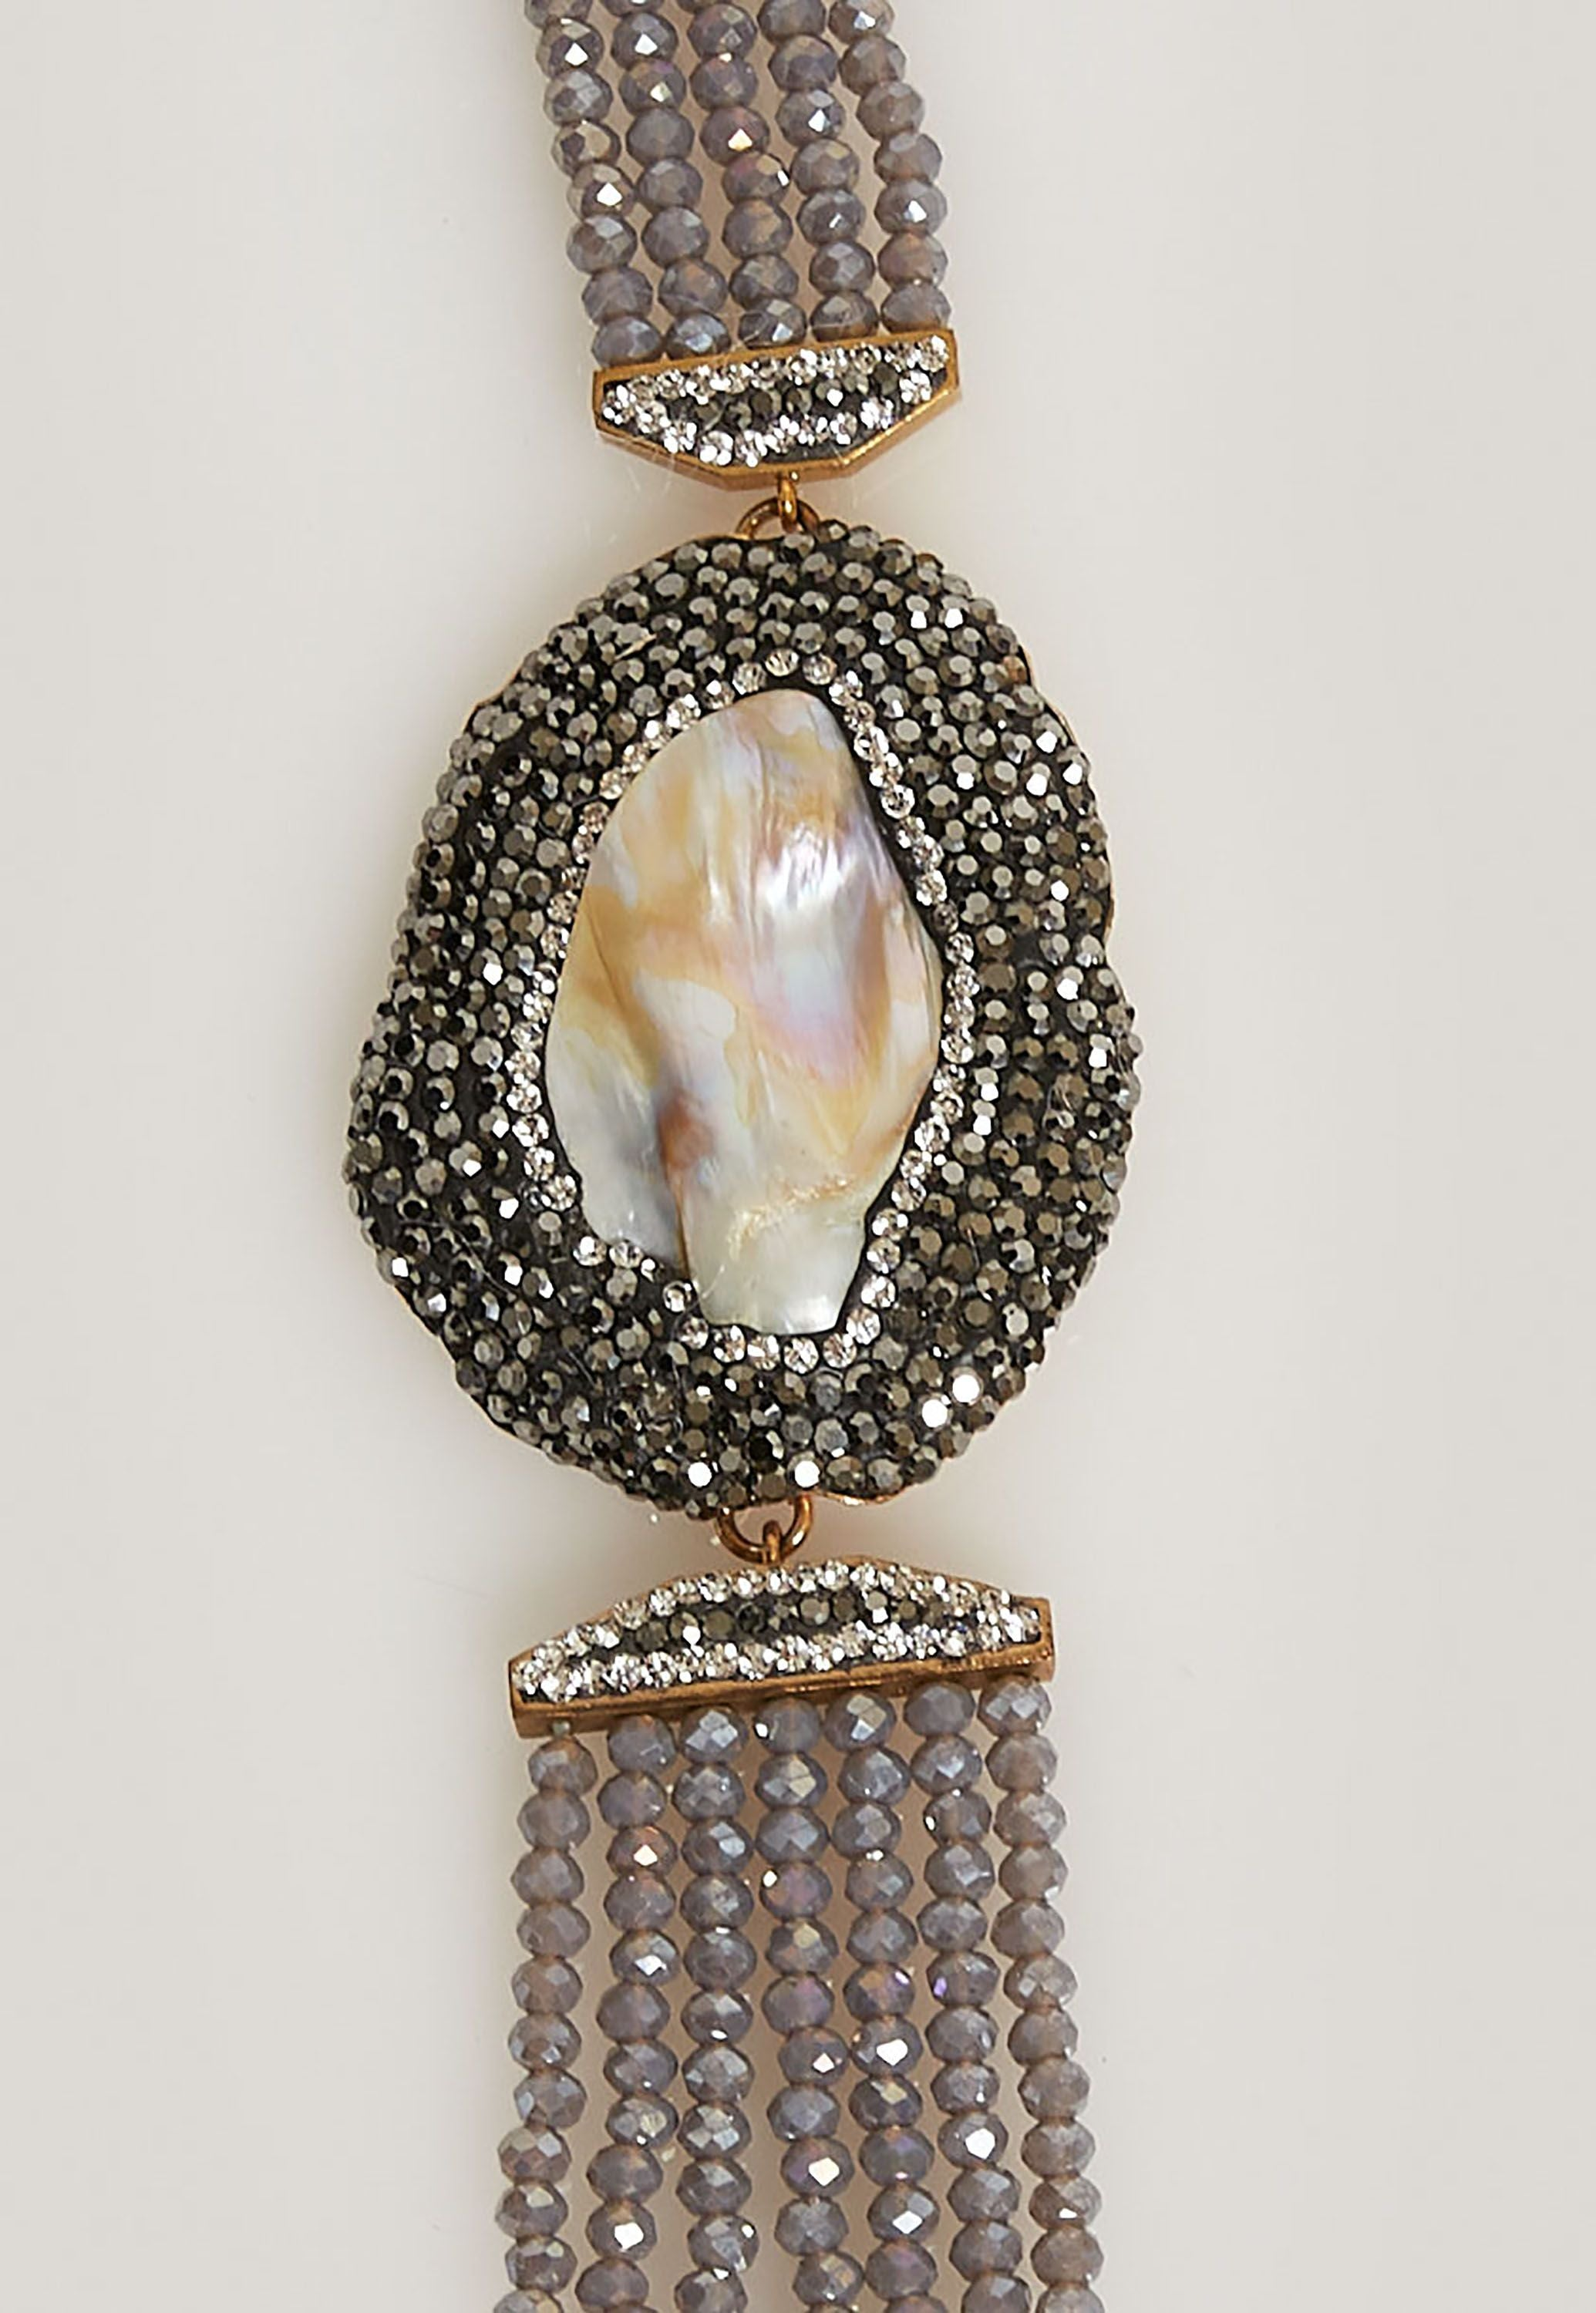 SILVER BEADS AND MOTHER OF PEARL WITH BLACK PAVÉ SIMULATED DIAMONDS